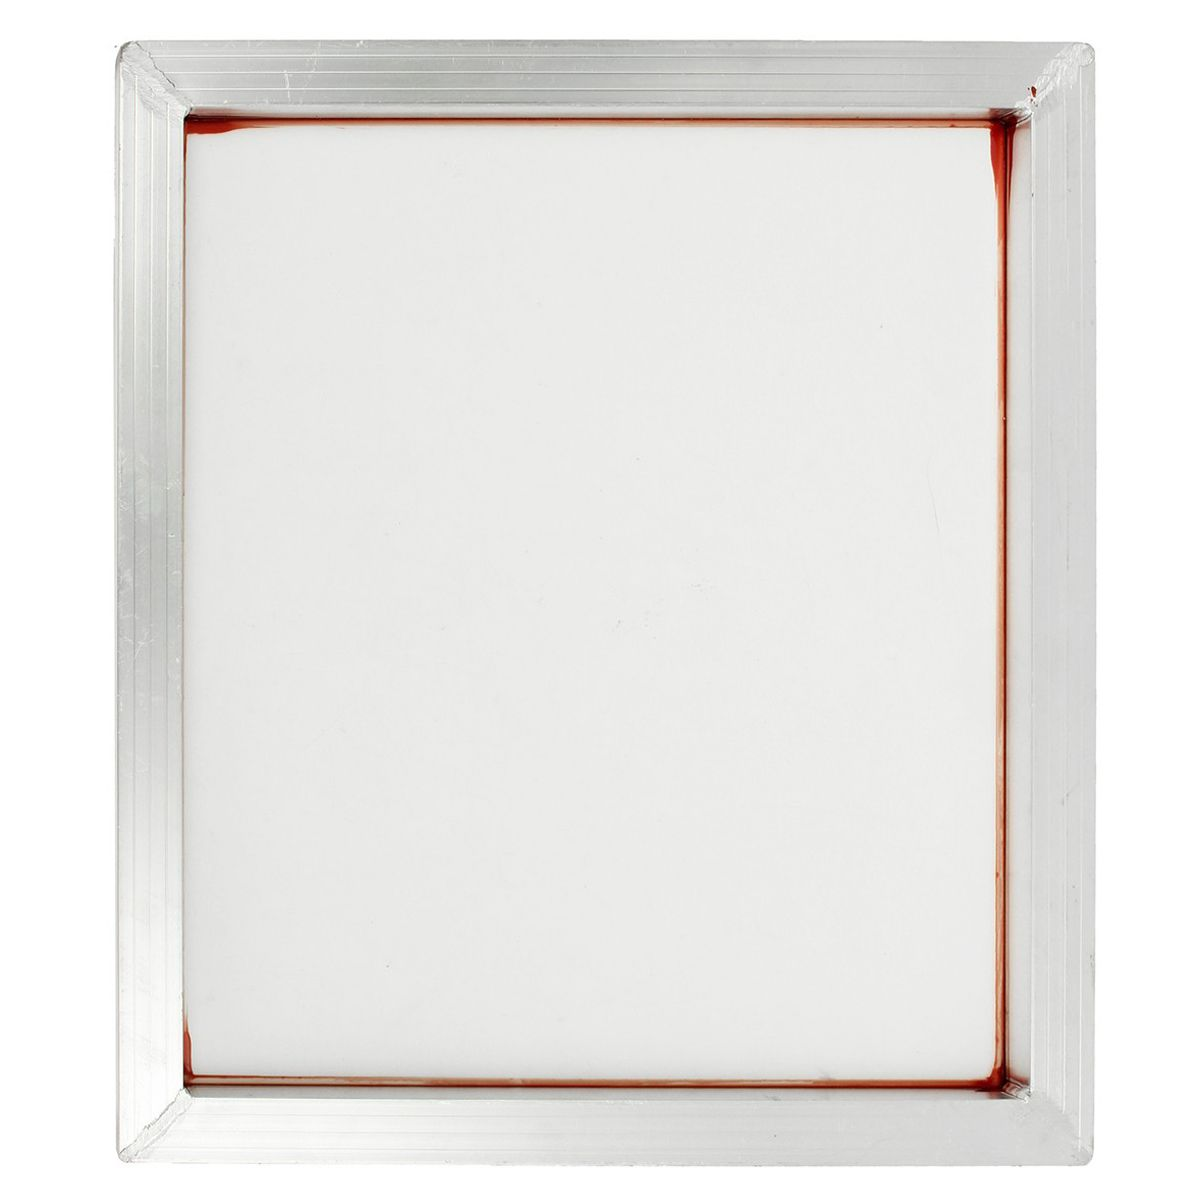 110 Mesh Screen Printing Aluminium Frame Stretched With White Silk Print Polyester Mesh For Printed Circuit Aluminium Frame